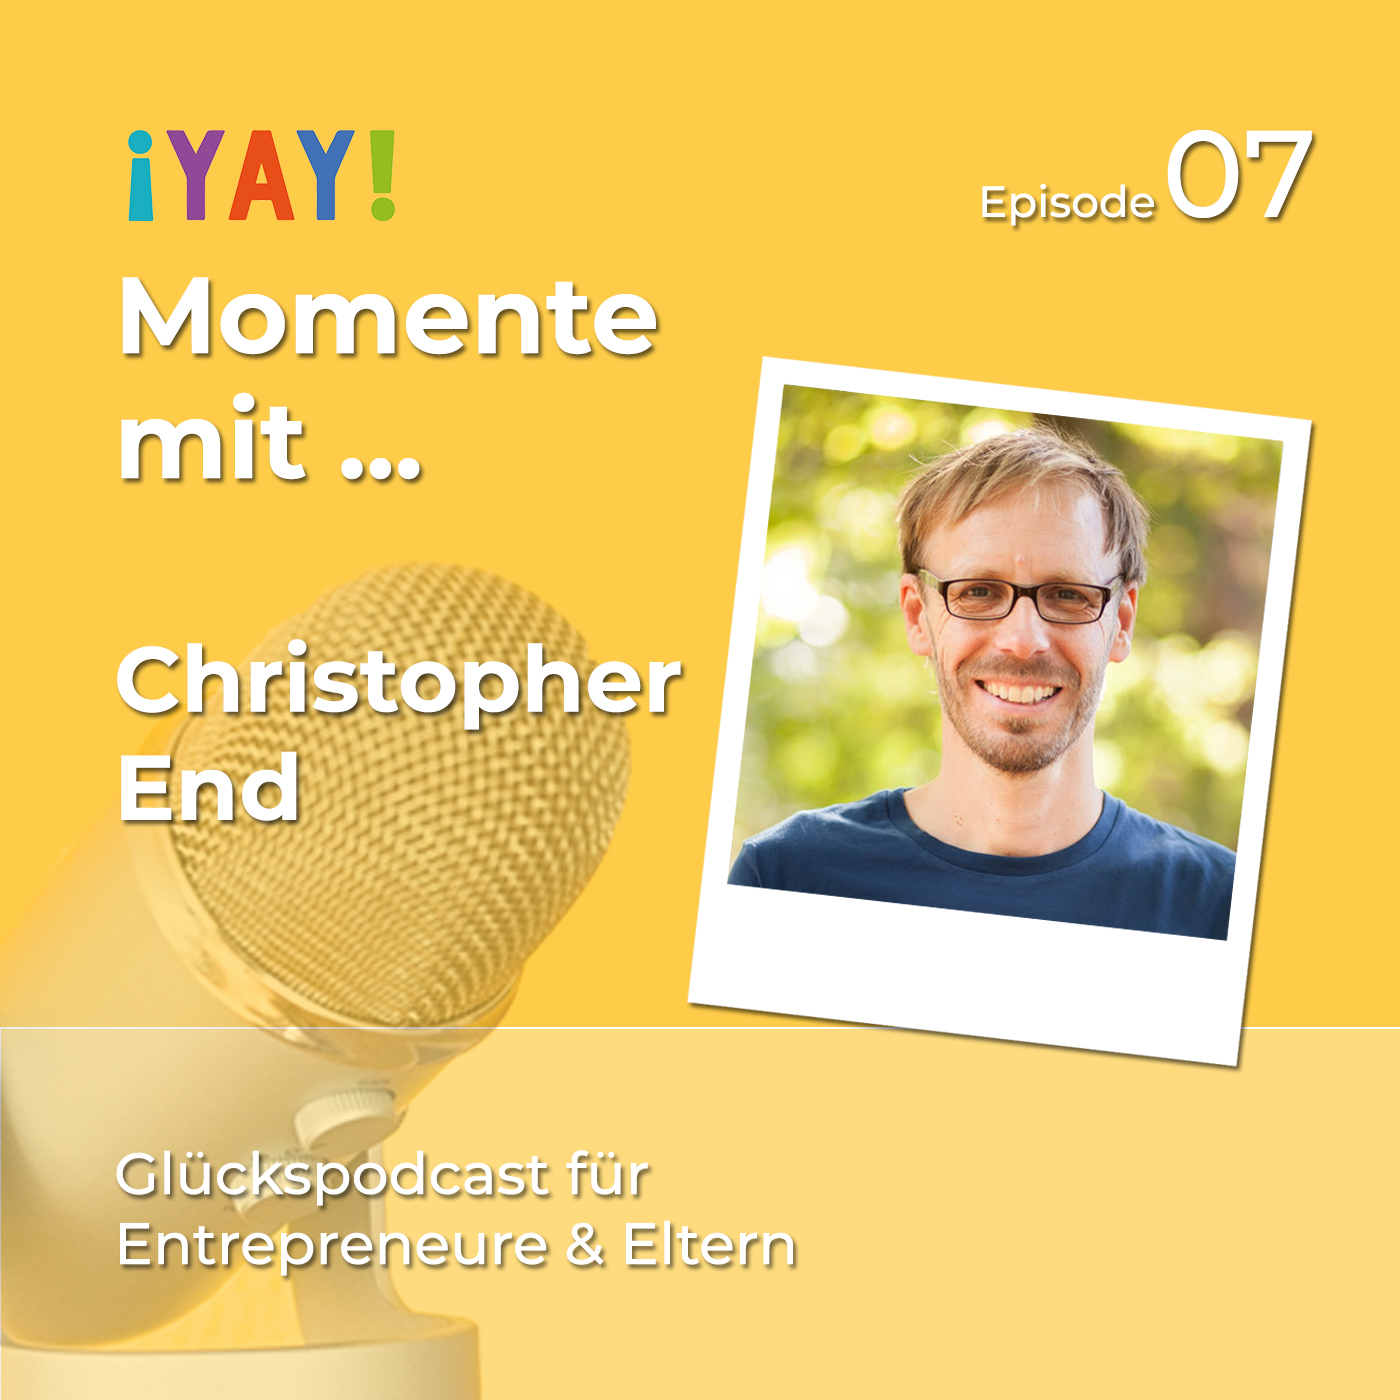 Episode 07: Yay-Momente mit... Christopher End